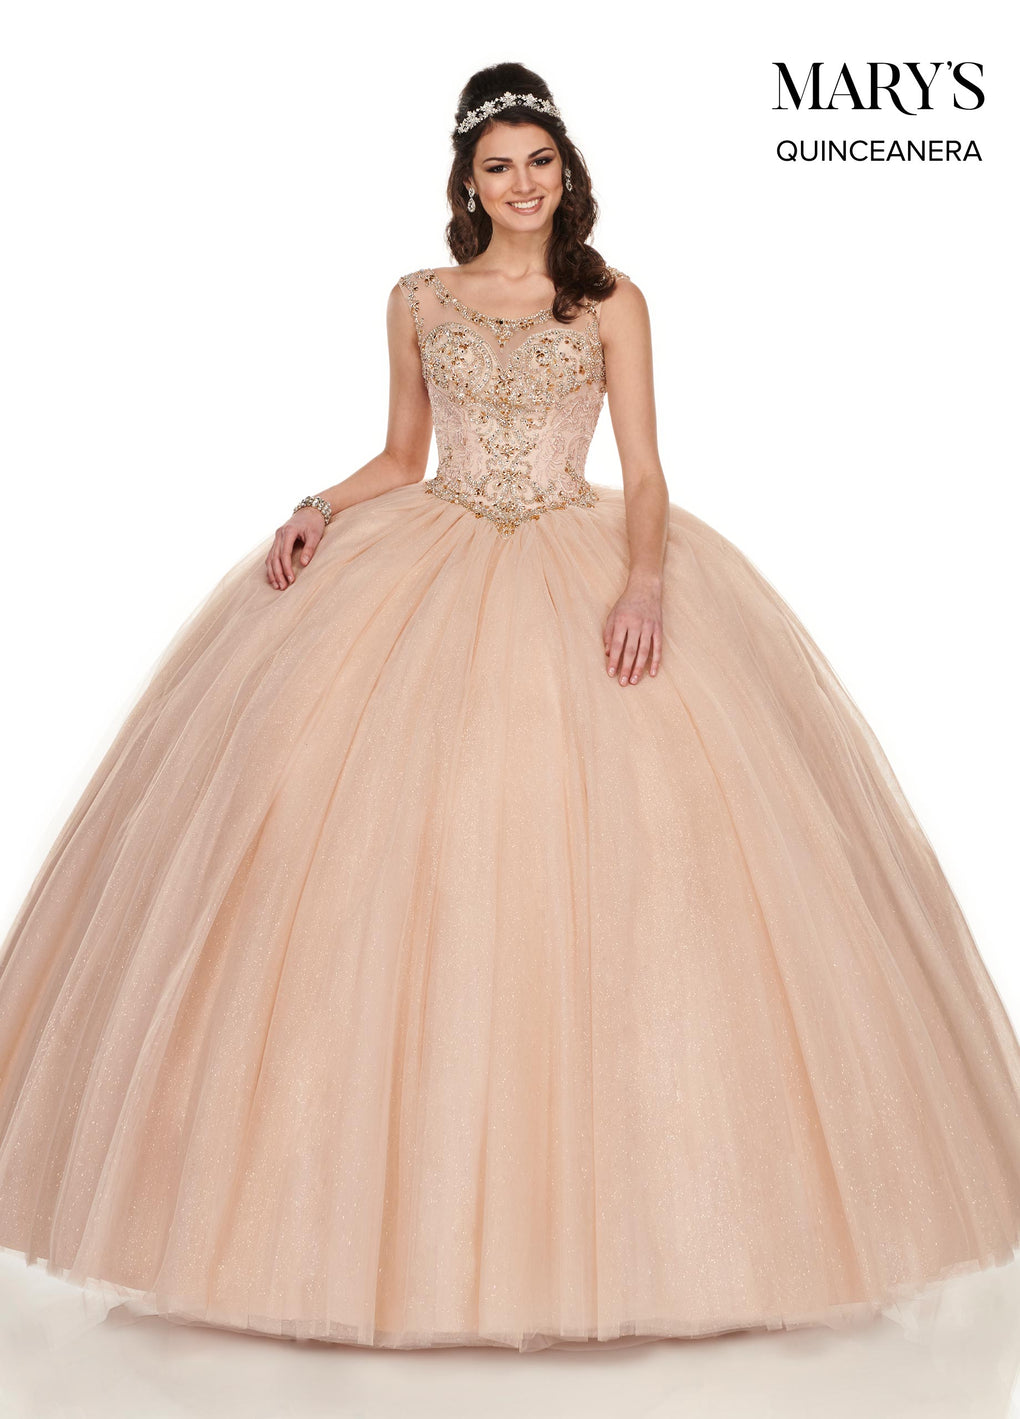 Marys Quinceanera Dresses in Jade/Silver or Dark Champagne/Rose Gold Color